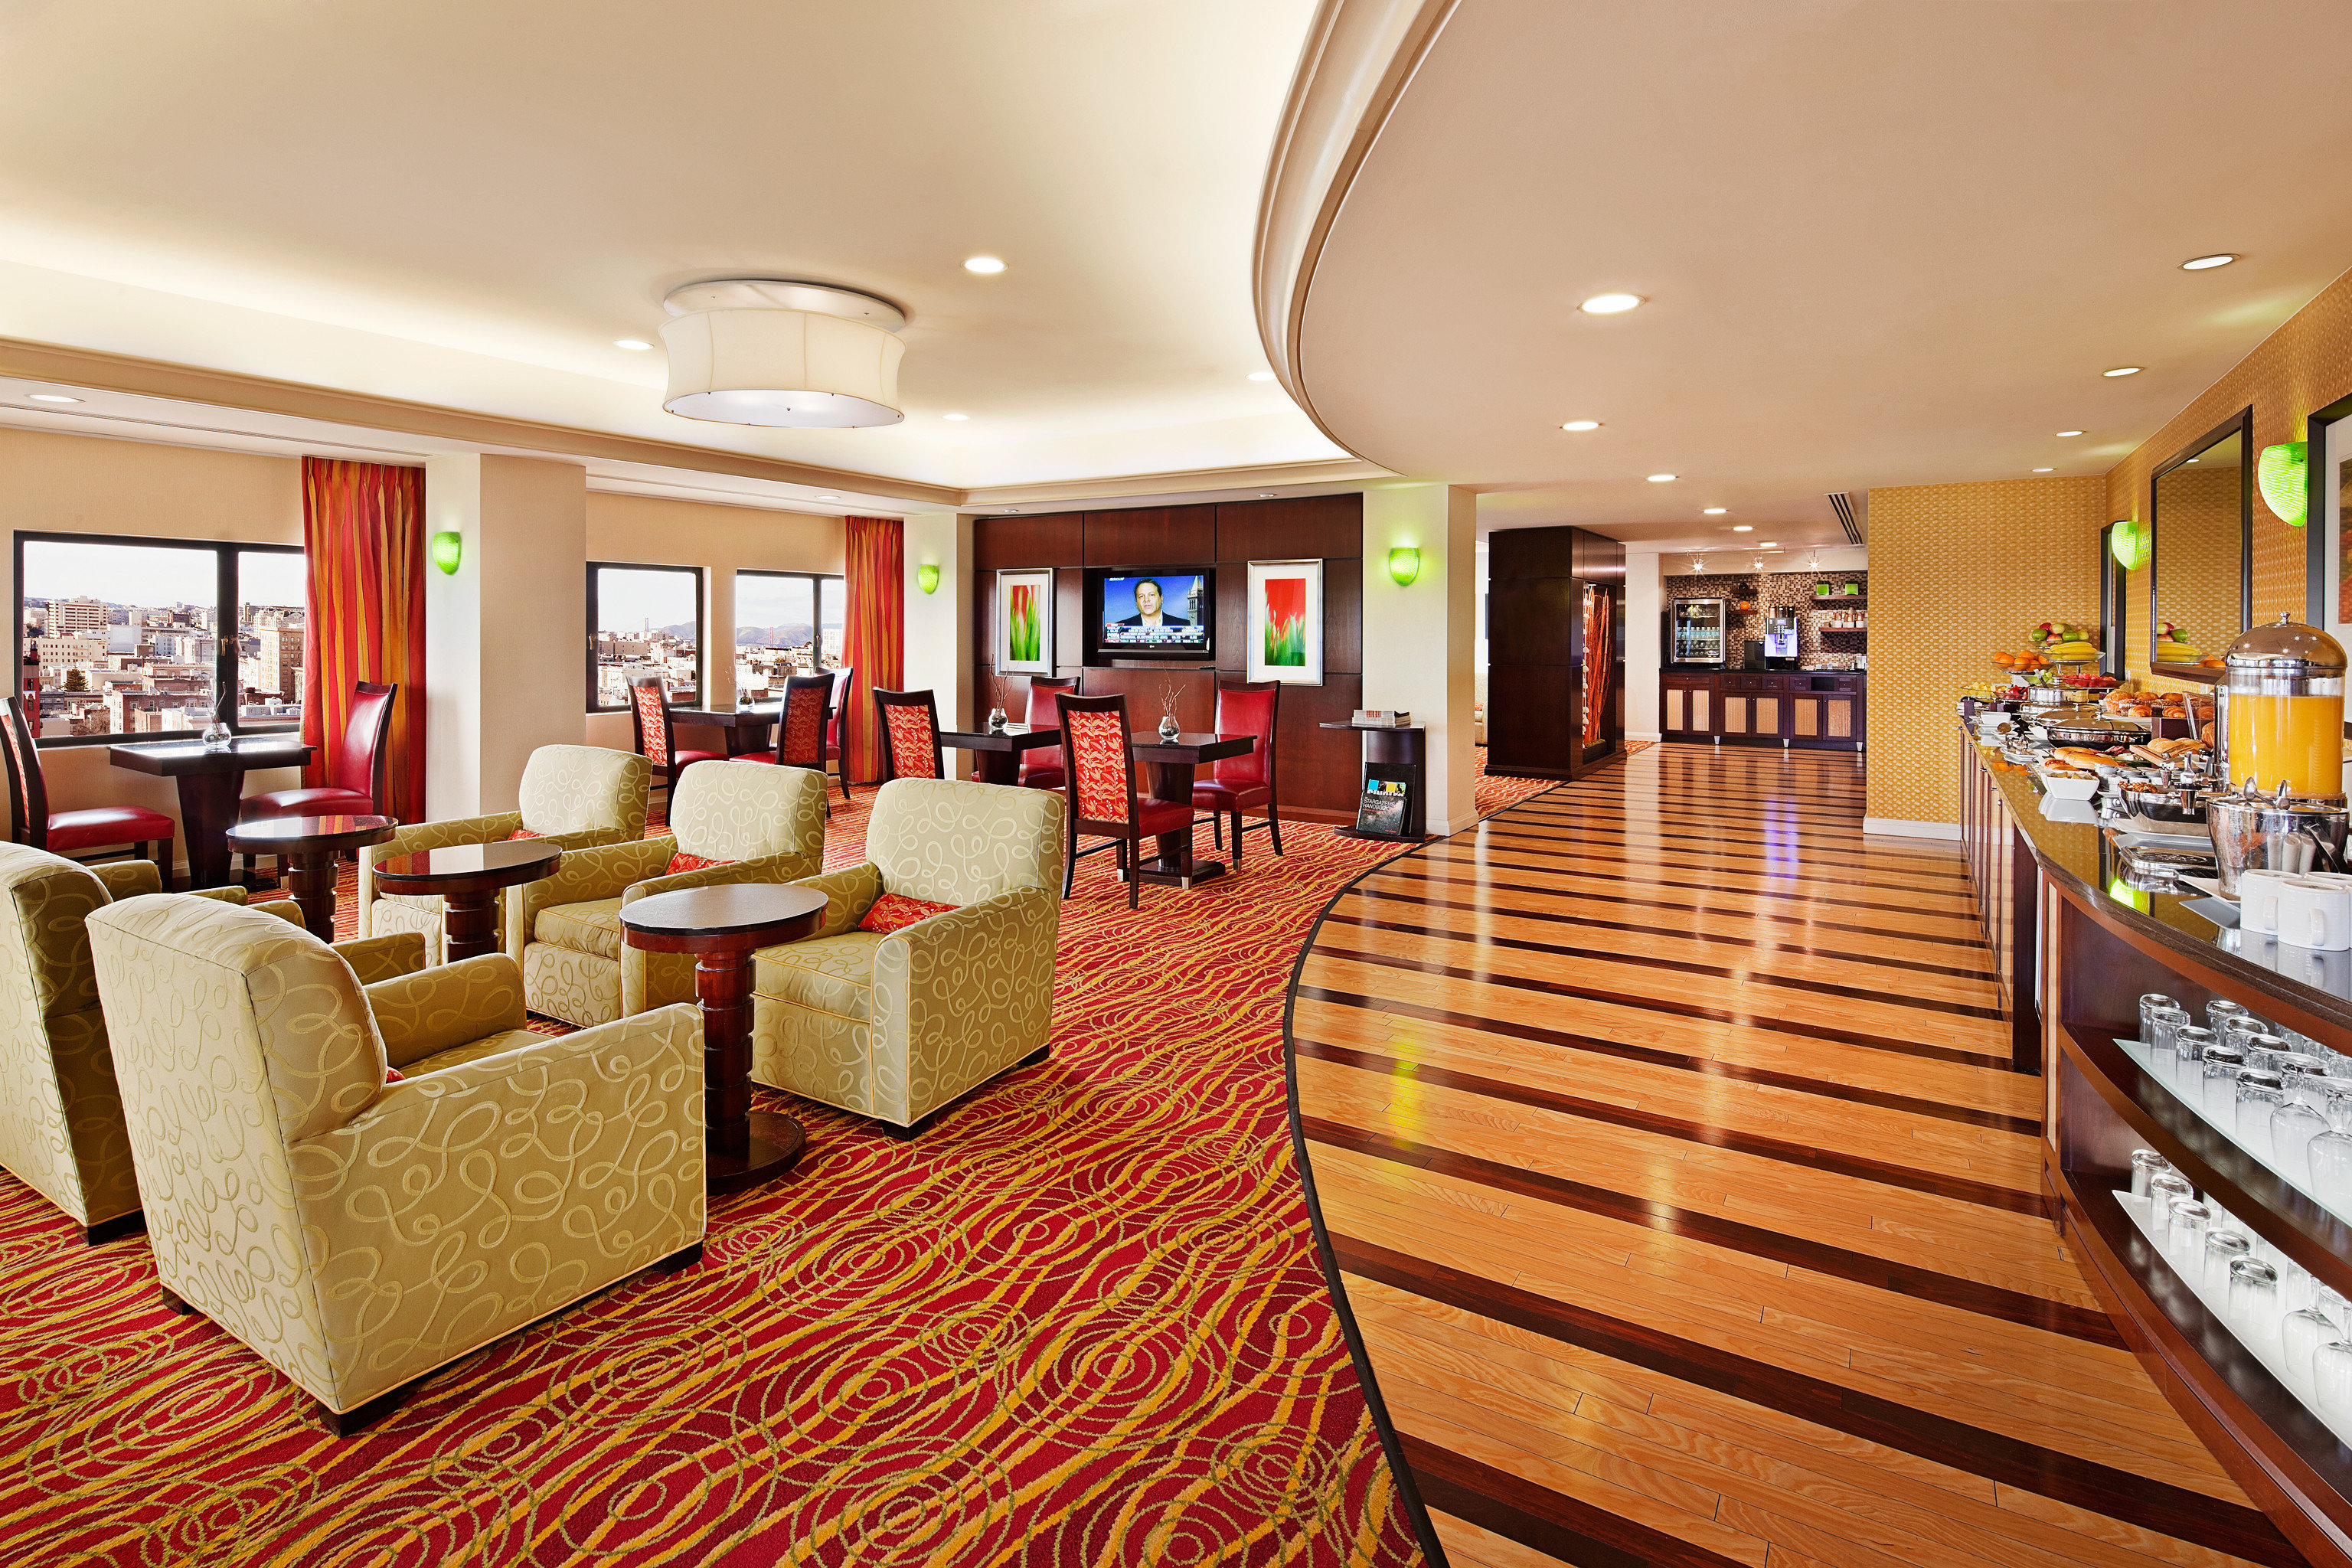 Hip Lounge Luxury Modern chair Lobby Resort function hall recreation room conference hall convention center restaurant flat